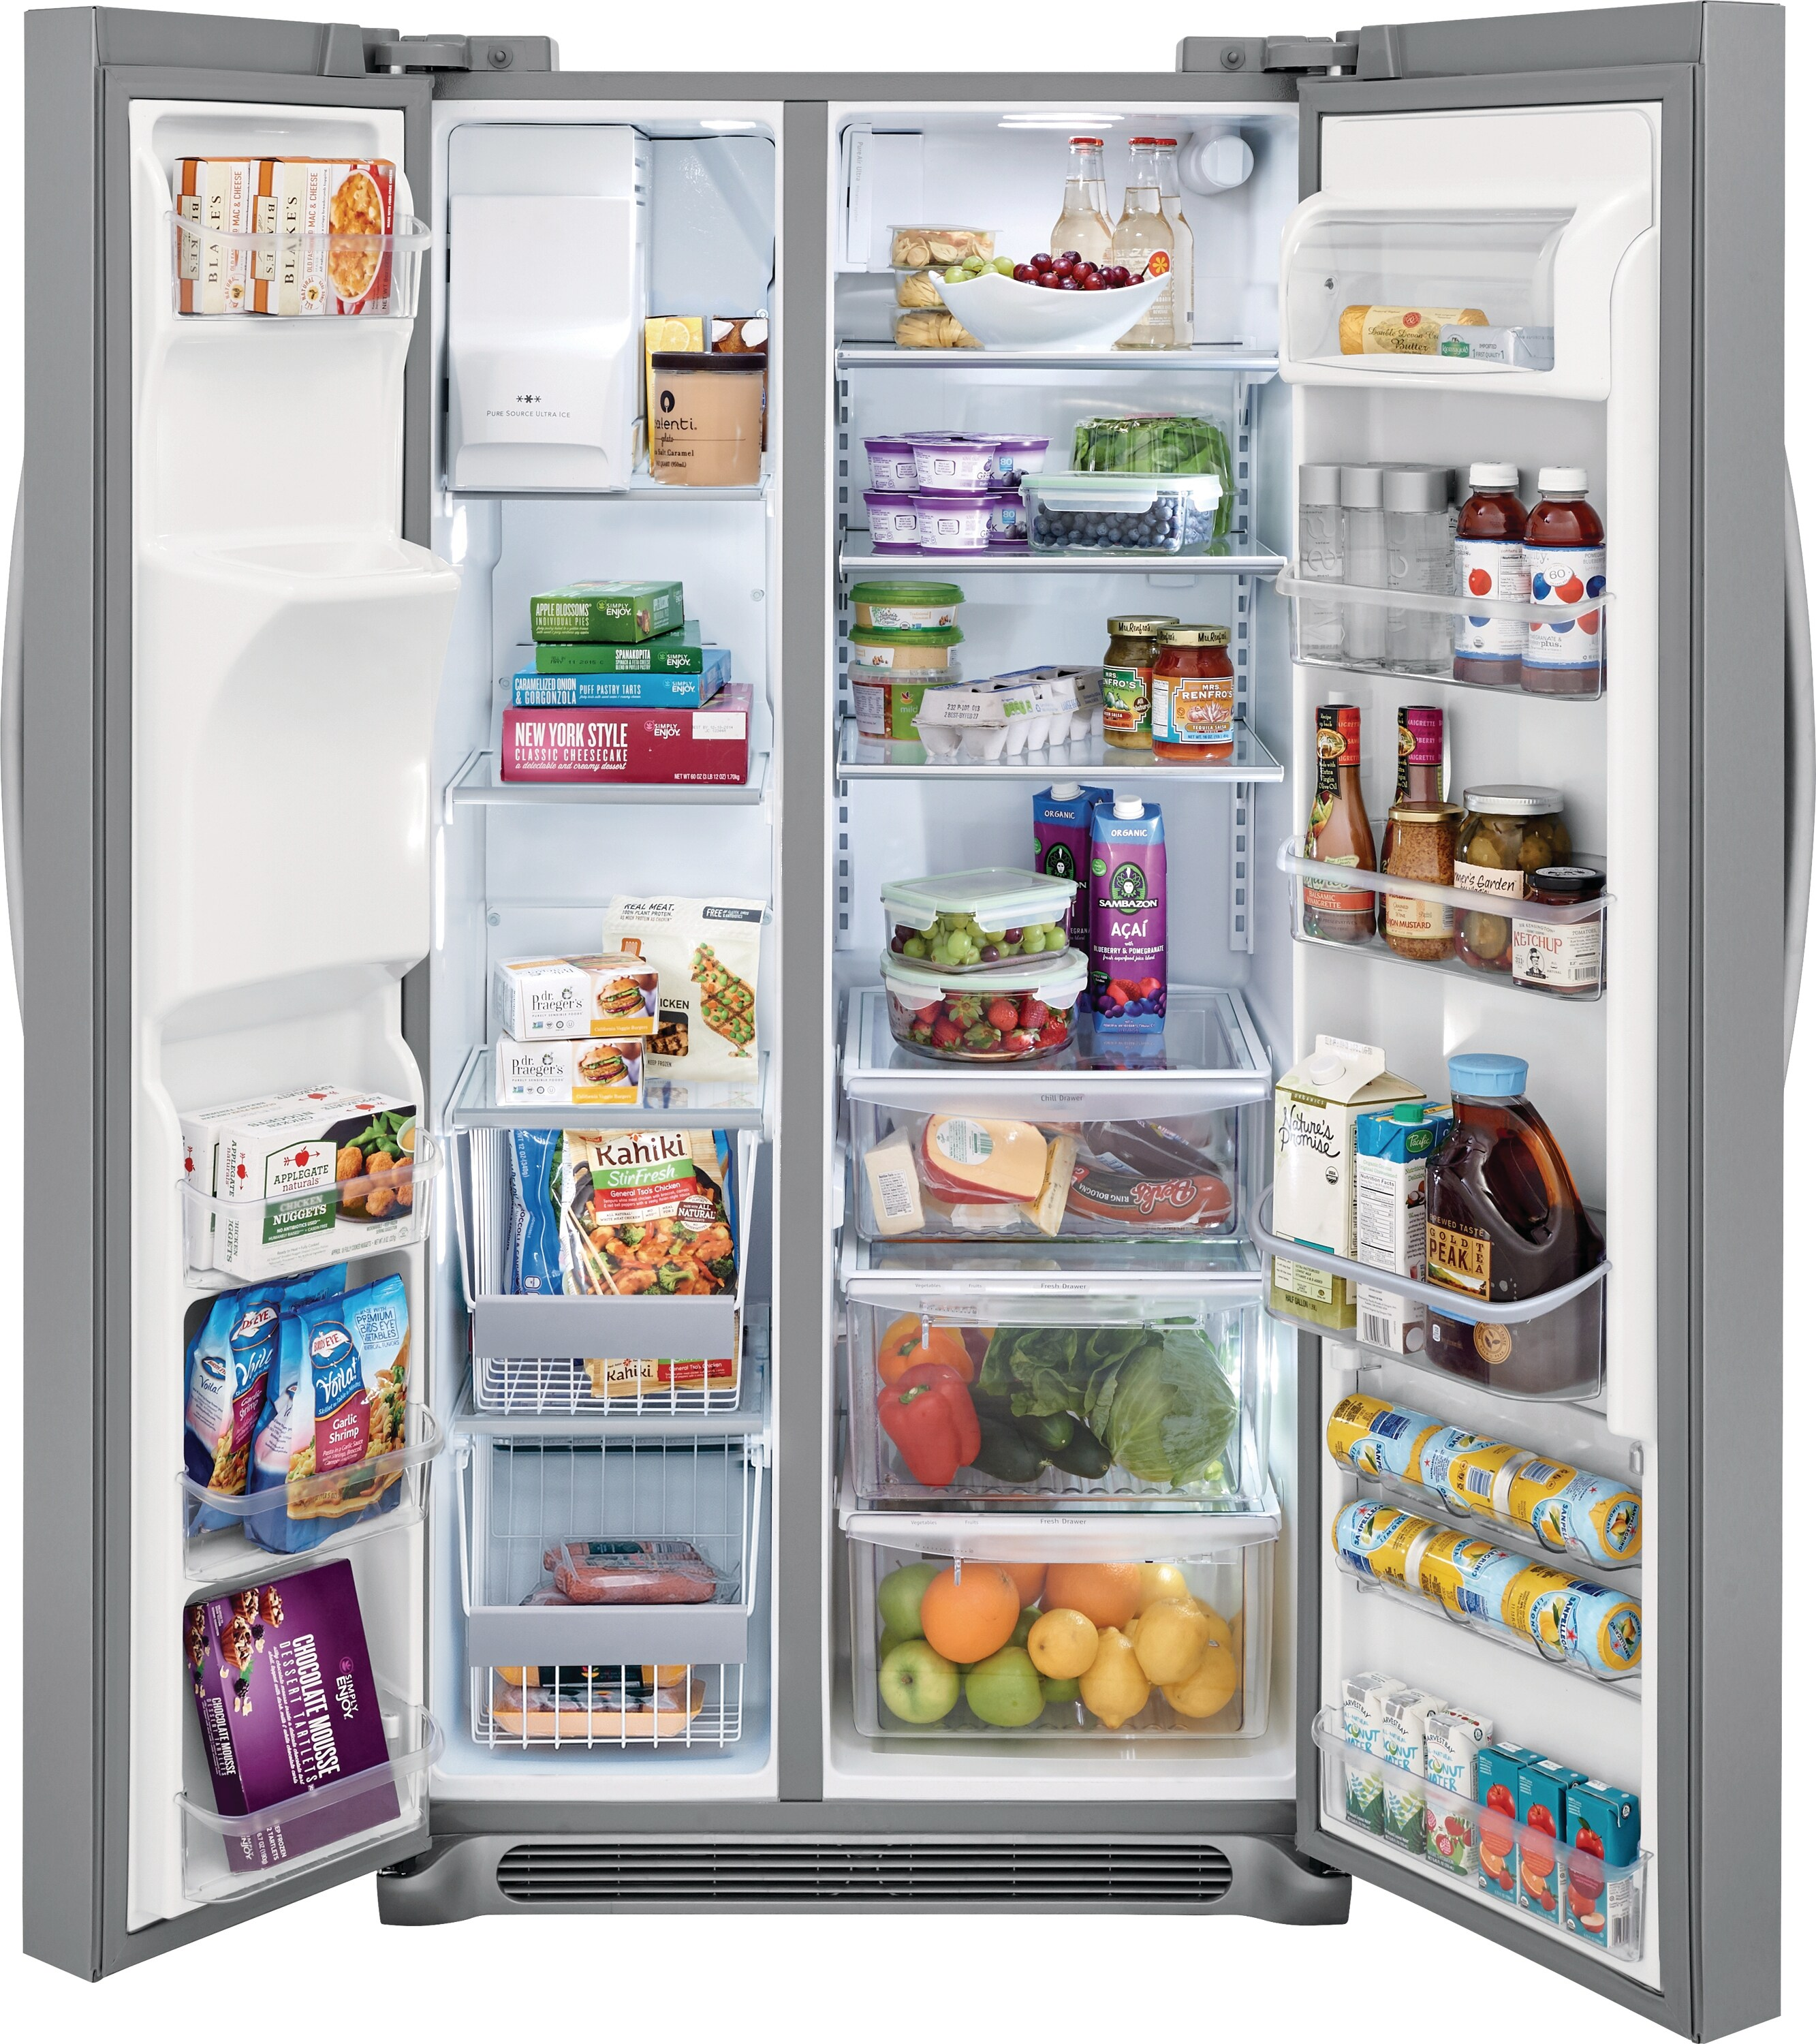 Model: FGSC2335TF | 22.2 Cu. Ft. Counter-Depth Side-by-Side Refrigerator